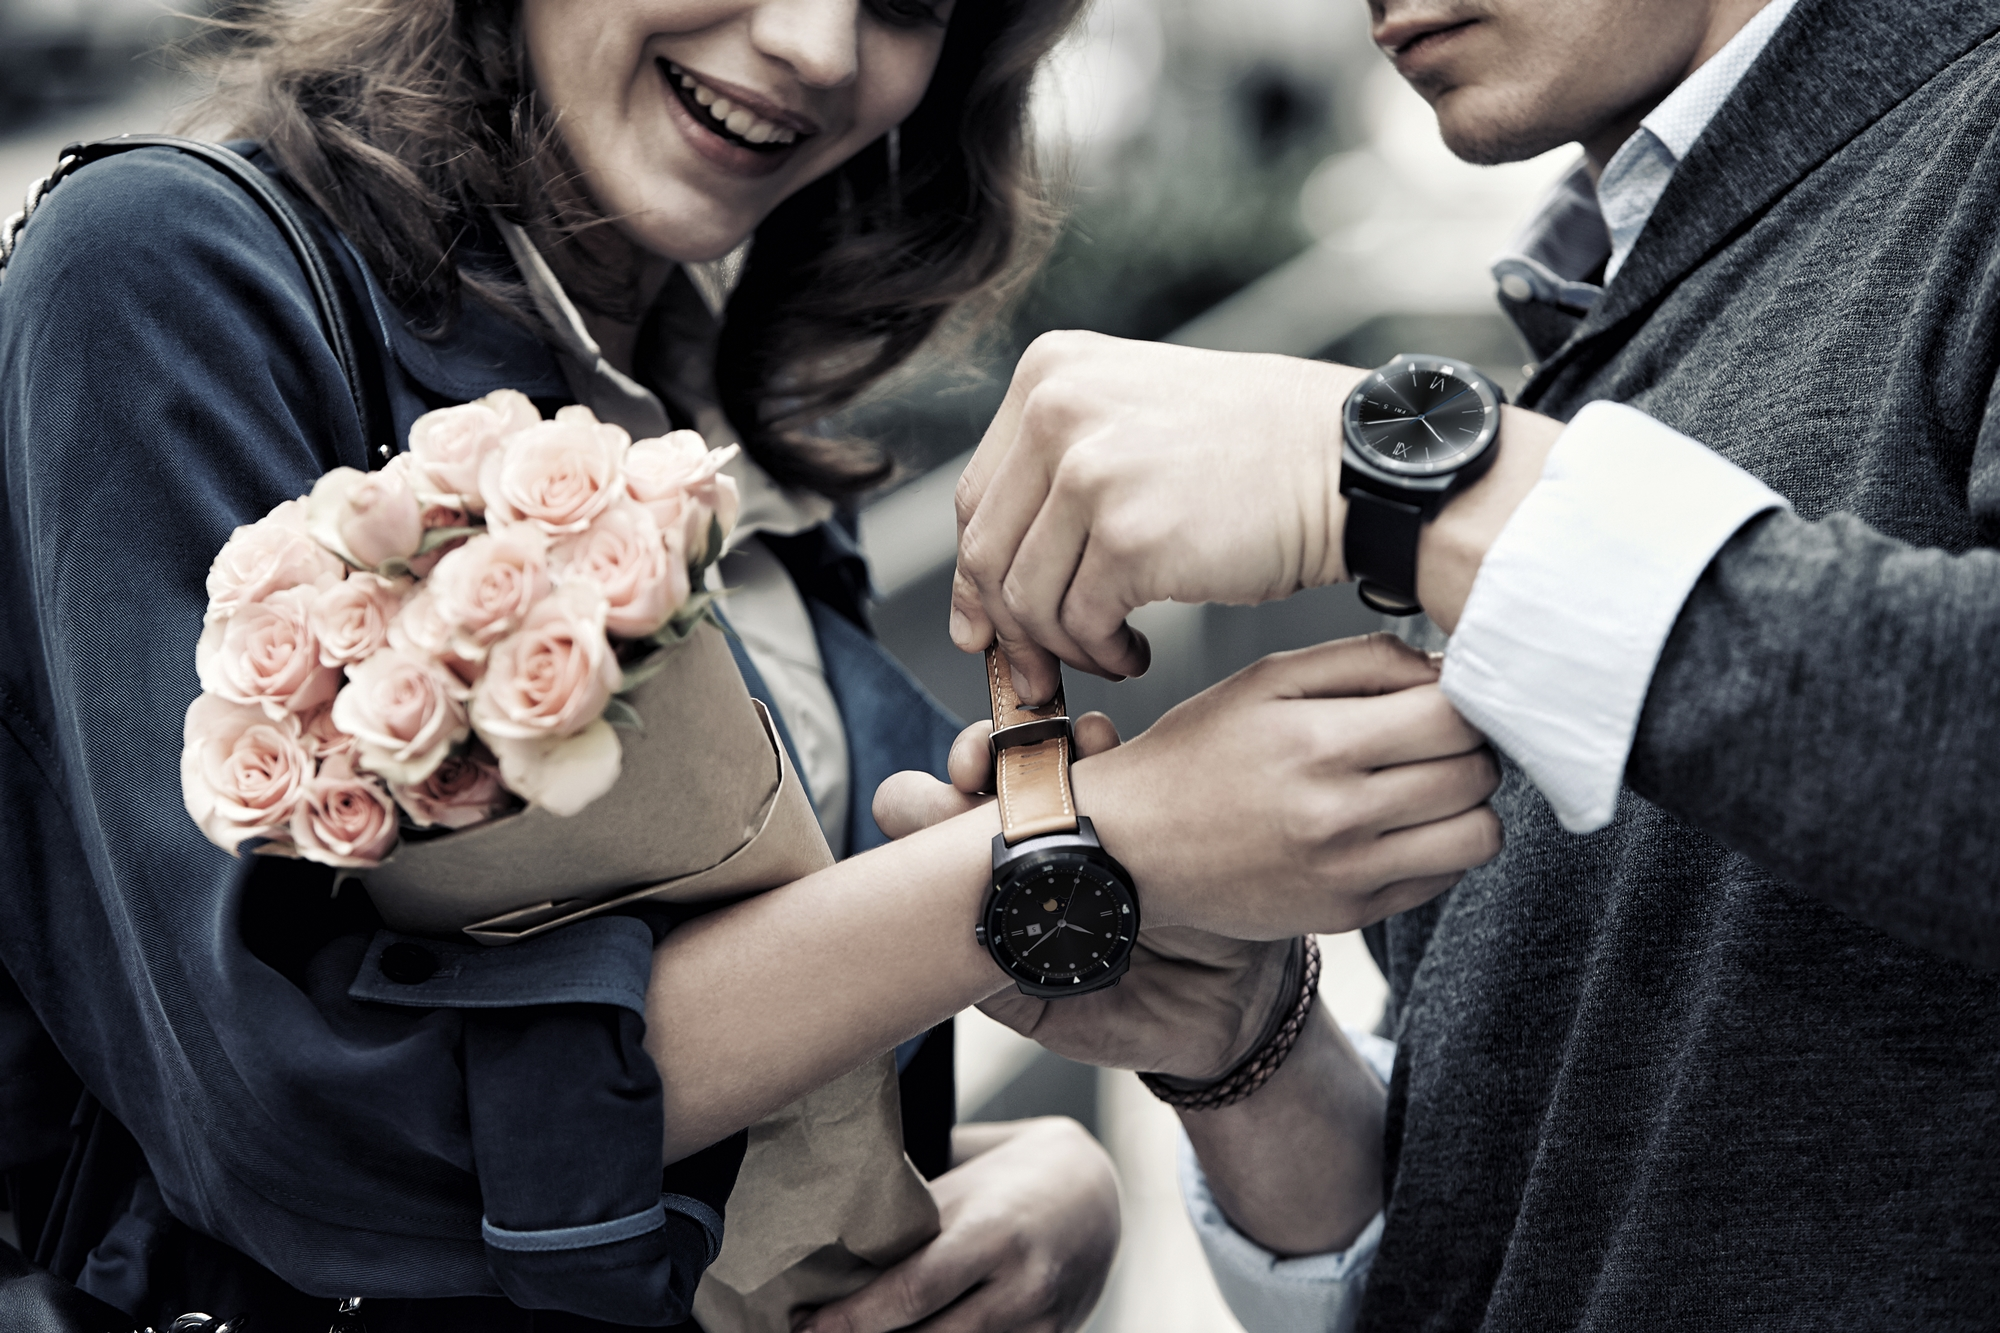 A man wearing the LG G Watch R as he puts another LG G Watch R on his girlfriend's wrist.